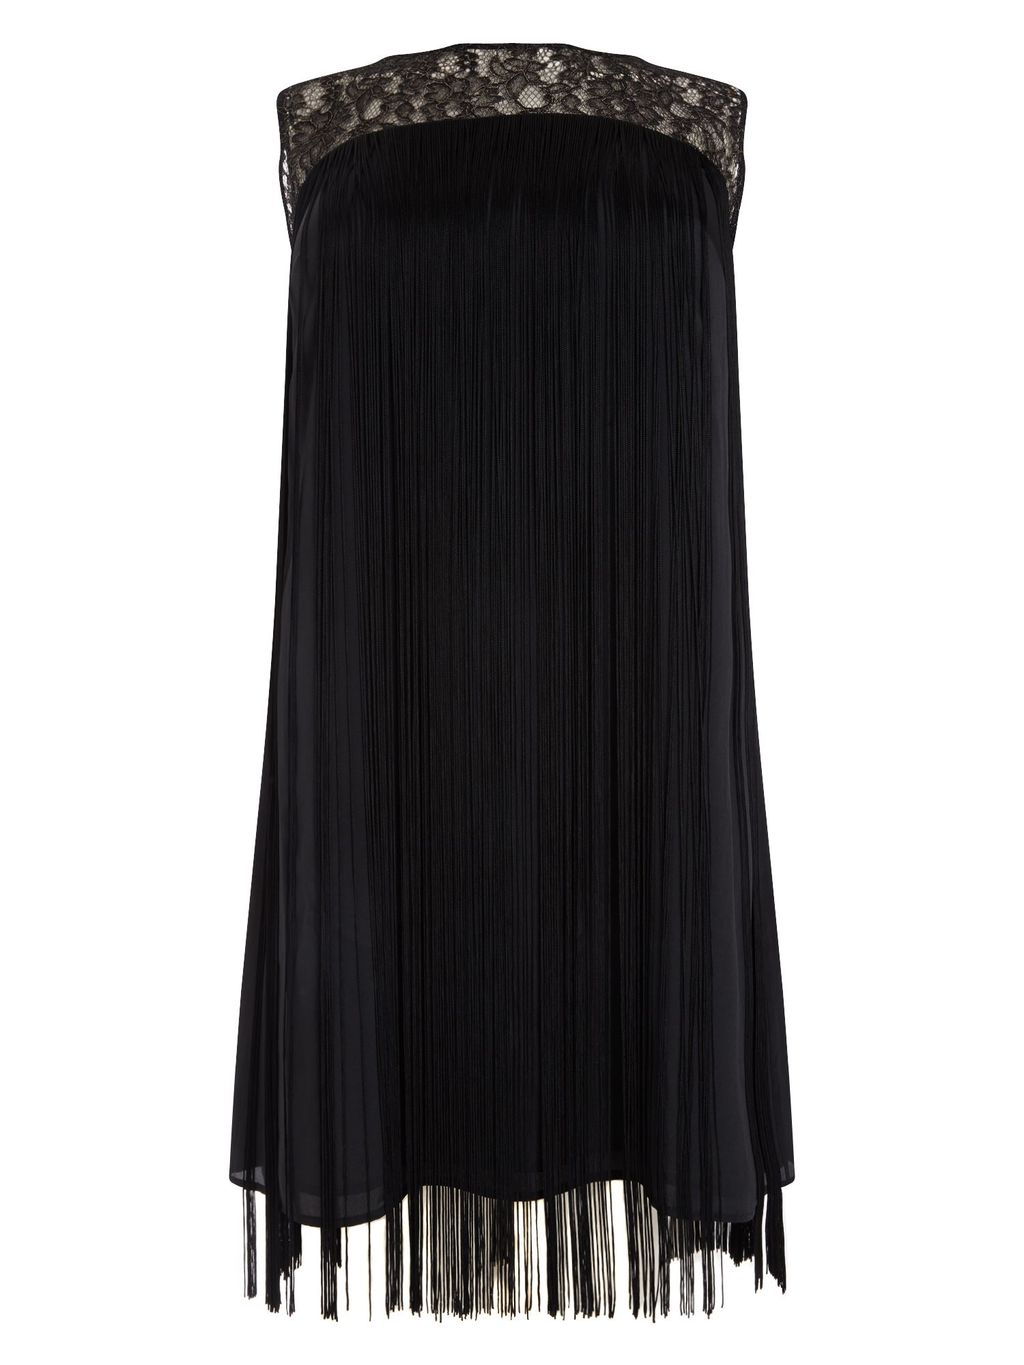 Fiamma Fringe Dress, Black - style: tunic; length: mid thigh; fit: loose; pattern: plain; sleeve style: sleeveless; bust detail: added detail/embellishment at bust; predominant colour: black; occasions: evening; fibres: polyester/polyamide - 100%; neckline: crew; sleeve length: sleeveless; pattern type: fabric; texture group: jersey - stretchy/drapey; embellishment: feathers; shoulder detail: sheer at shoulder; season: a/w 2015; wardrobe: event